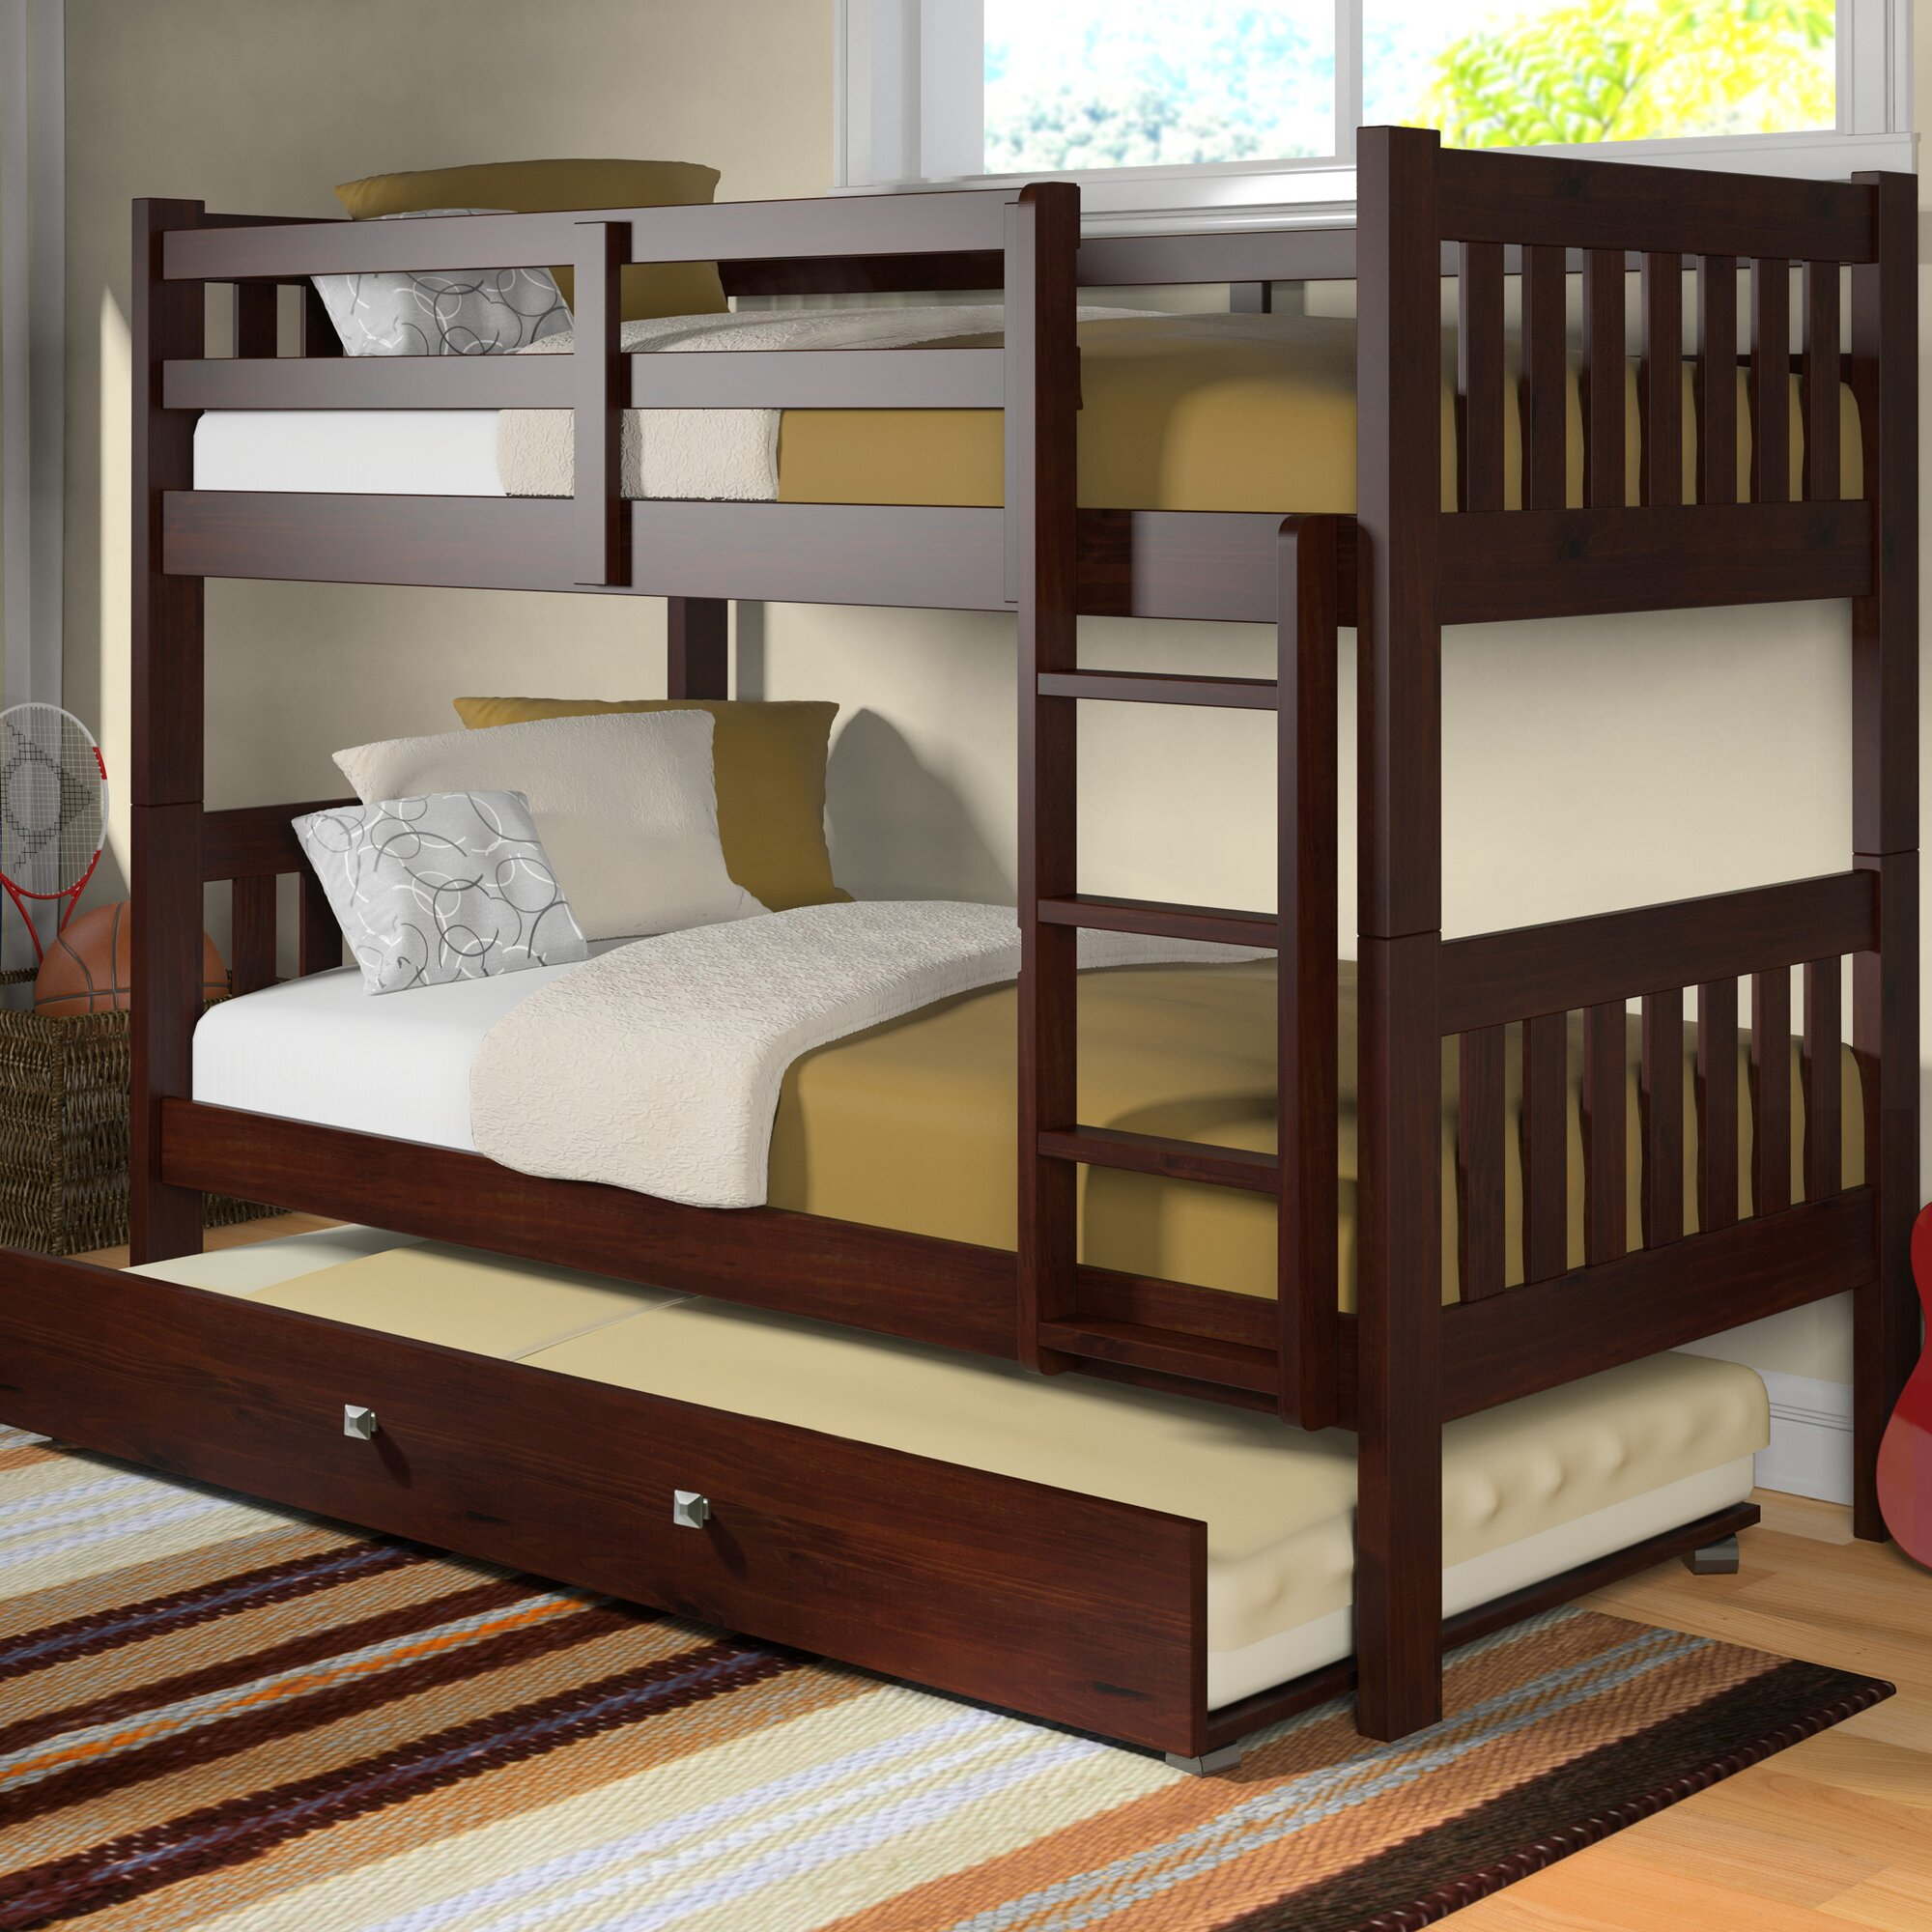 Donco Kids Washington Twin Bunk Bed with Trundle & Reviews | Wayfair